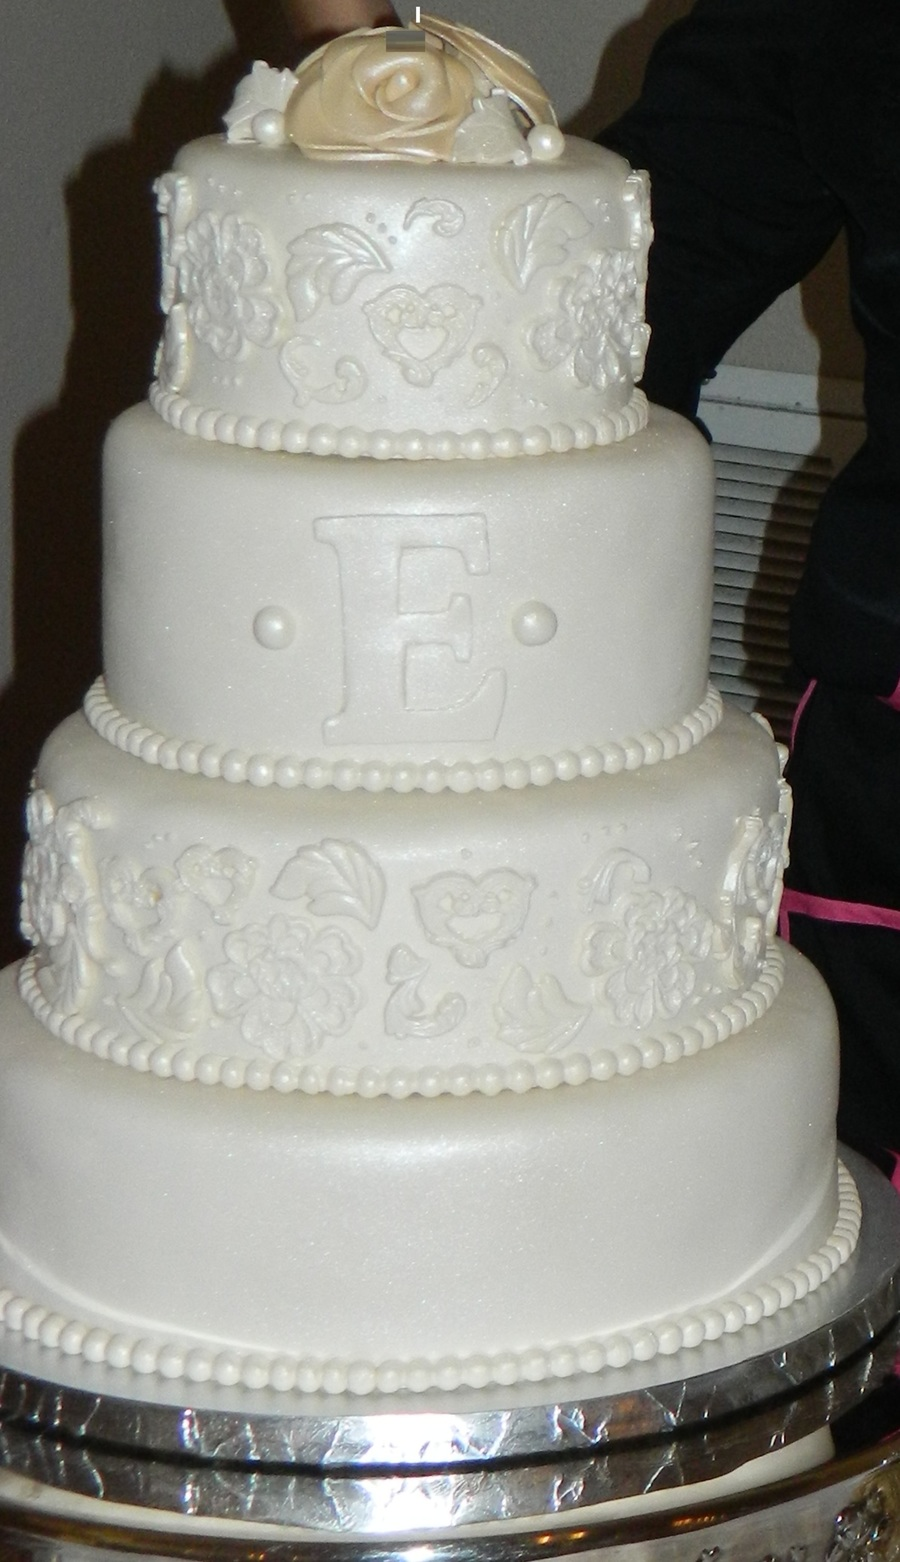 I Was Inspired By A Cake I Saw On Pinterest The Bride Wanted It To Have A Vintage Look 4 Tier Cake Covered In Fondant With Pearl Dust on Cake Central